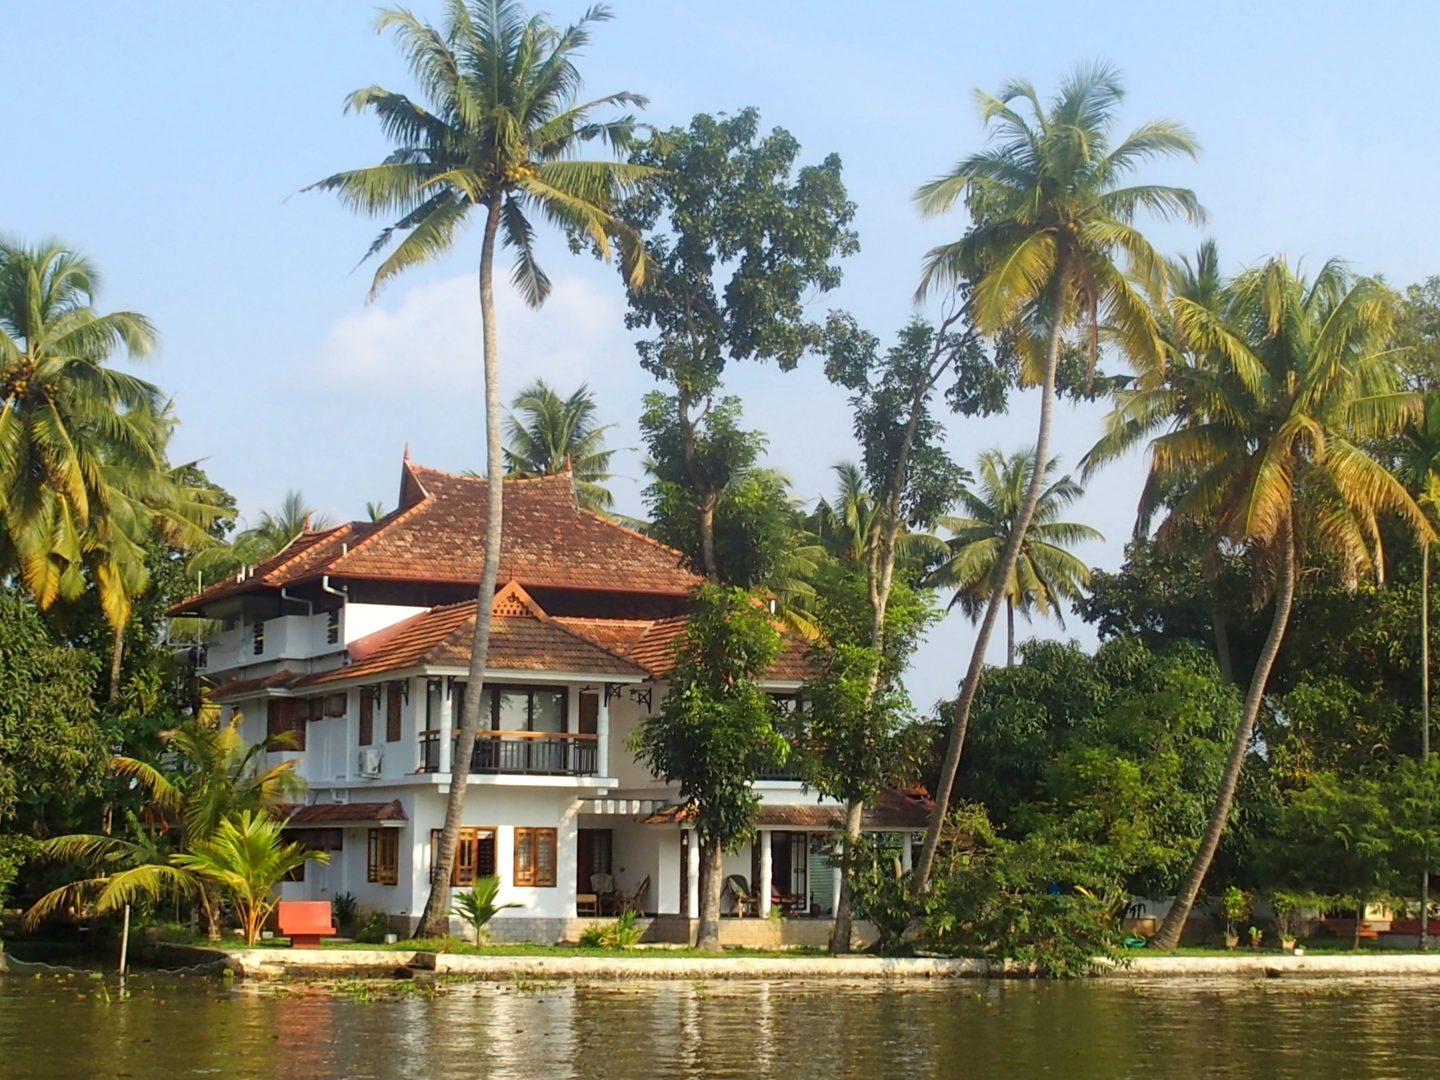 Belle maison rive backwaters Allepey Kerala Inde